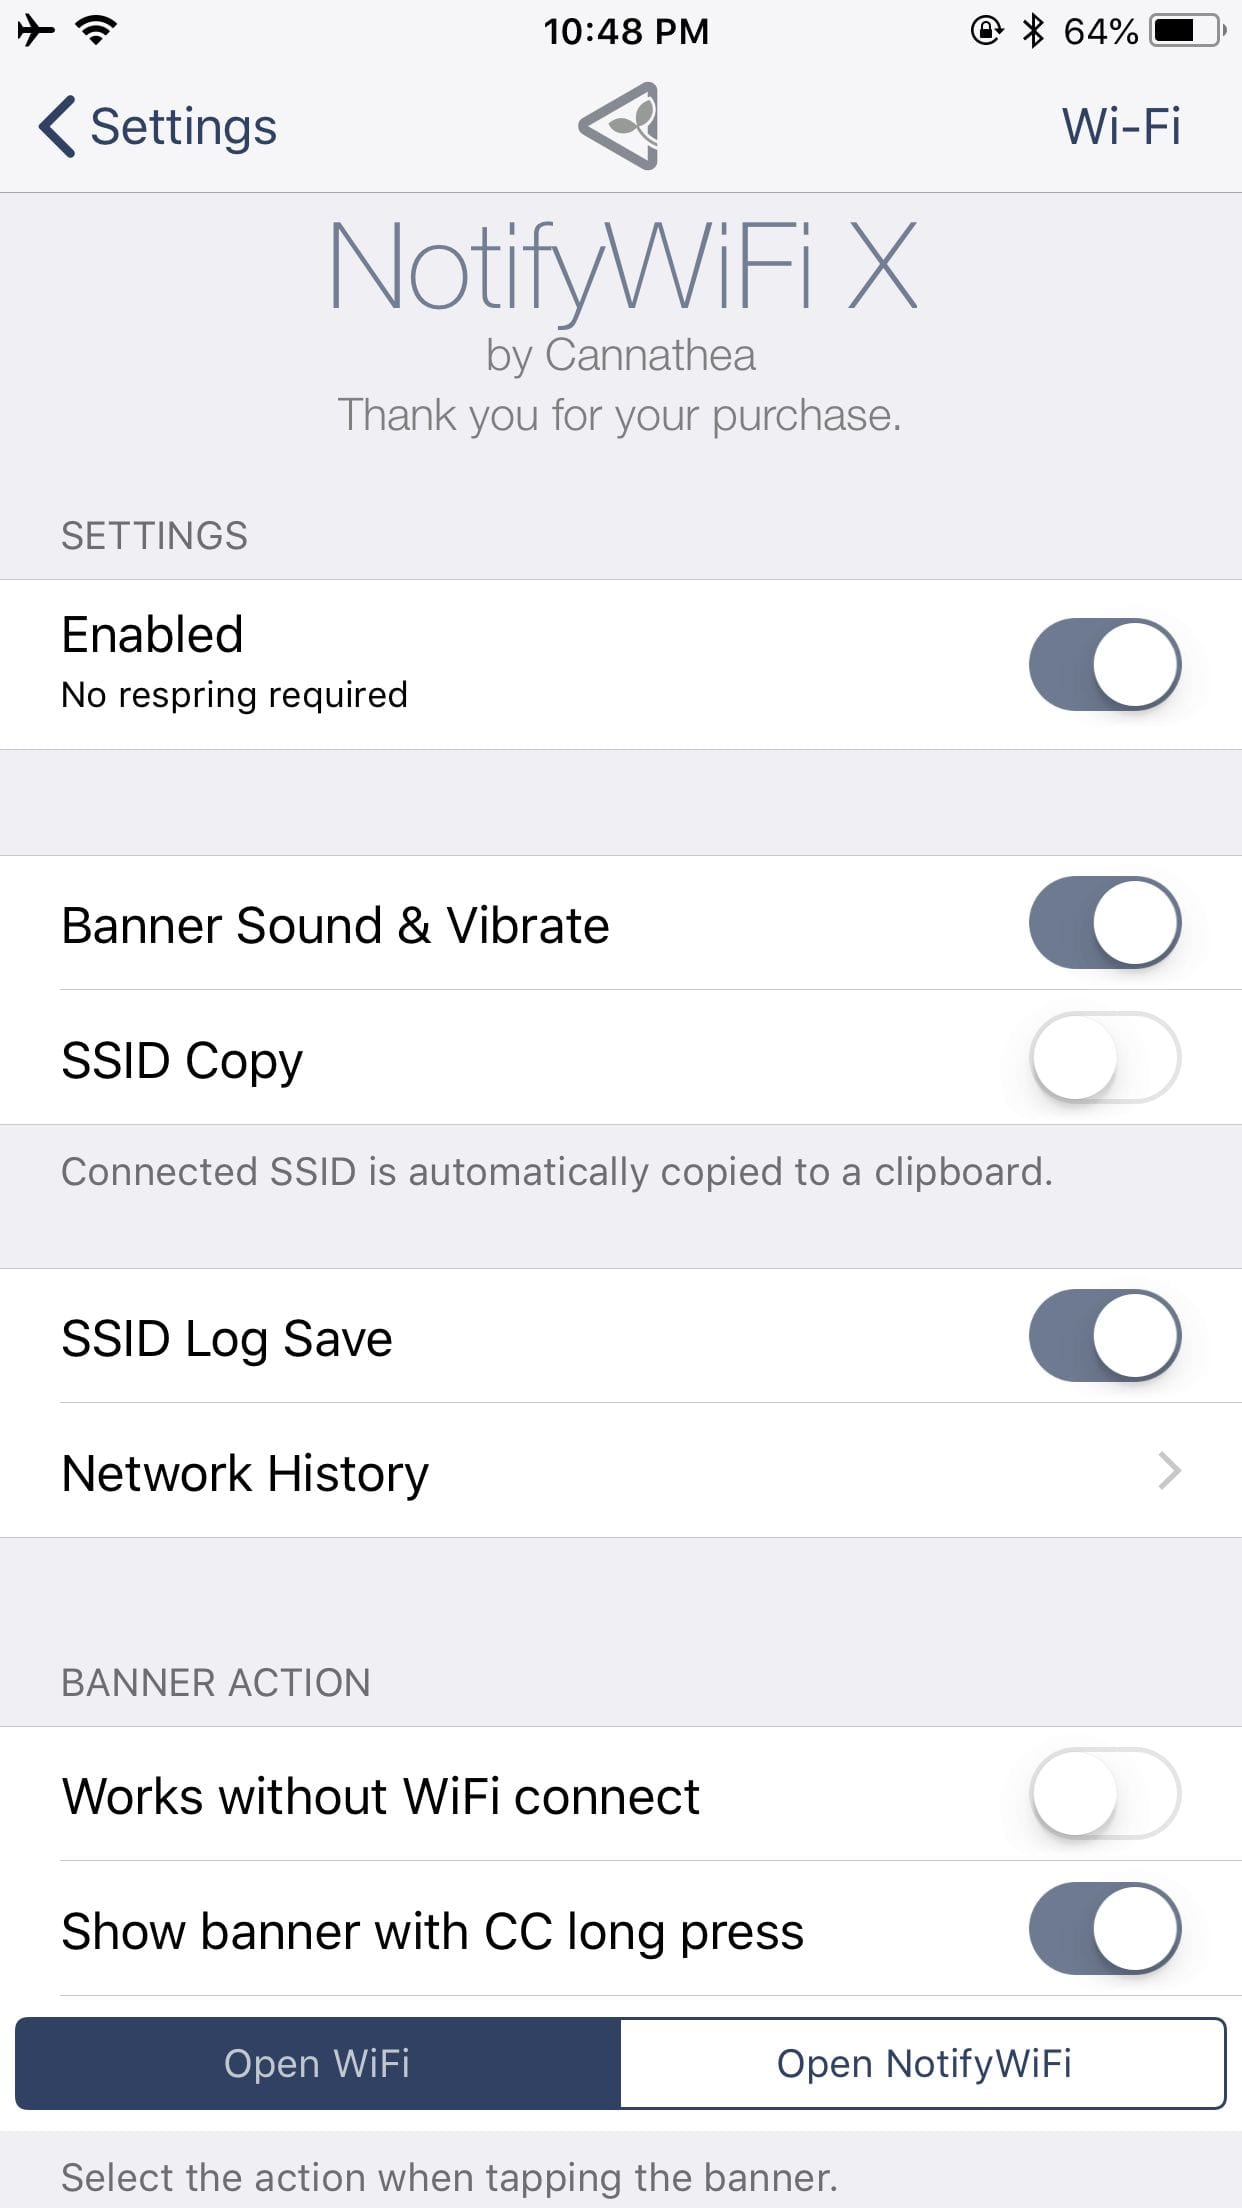 Download NotifyWiFi X 1.1.4k